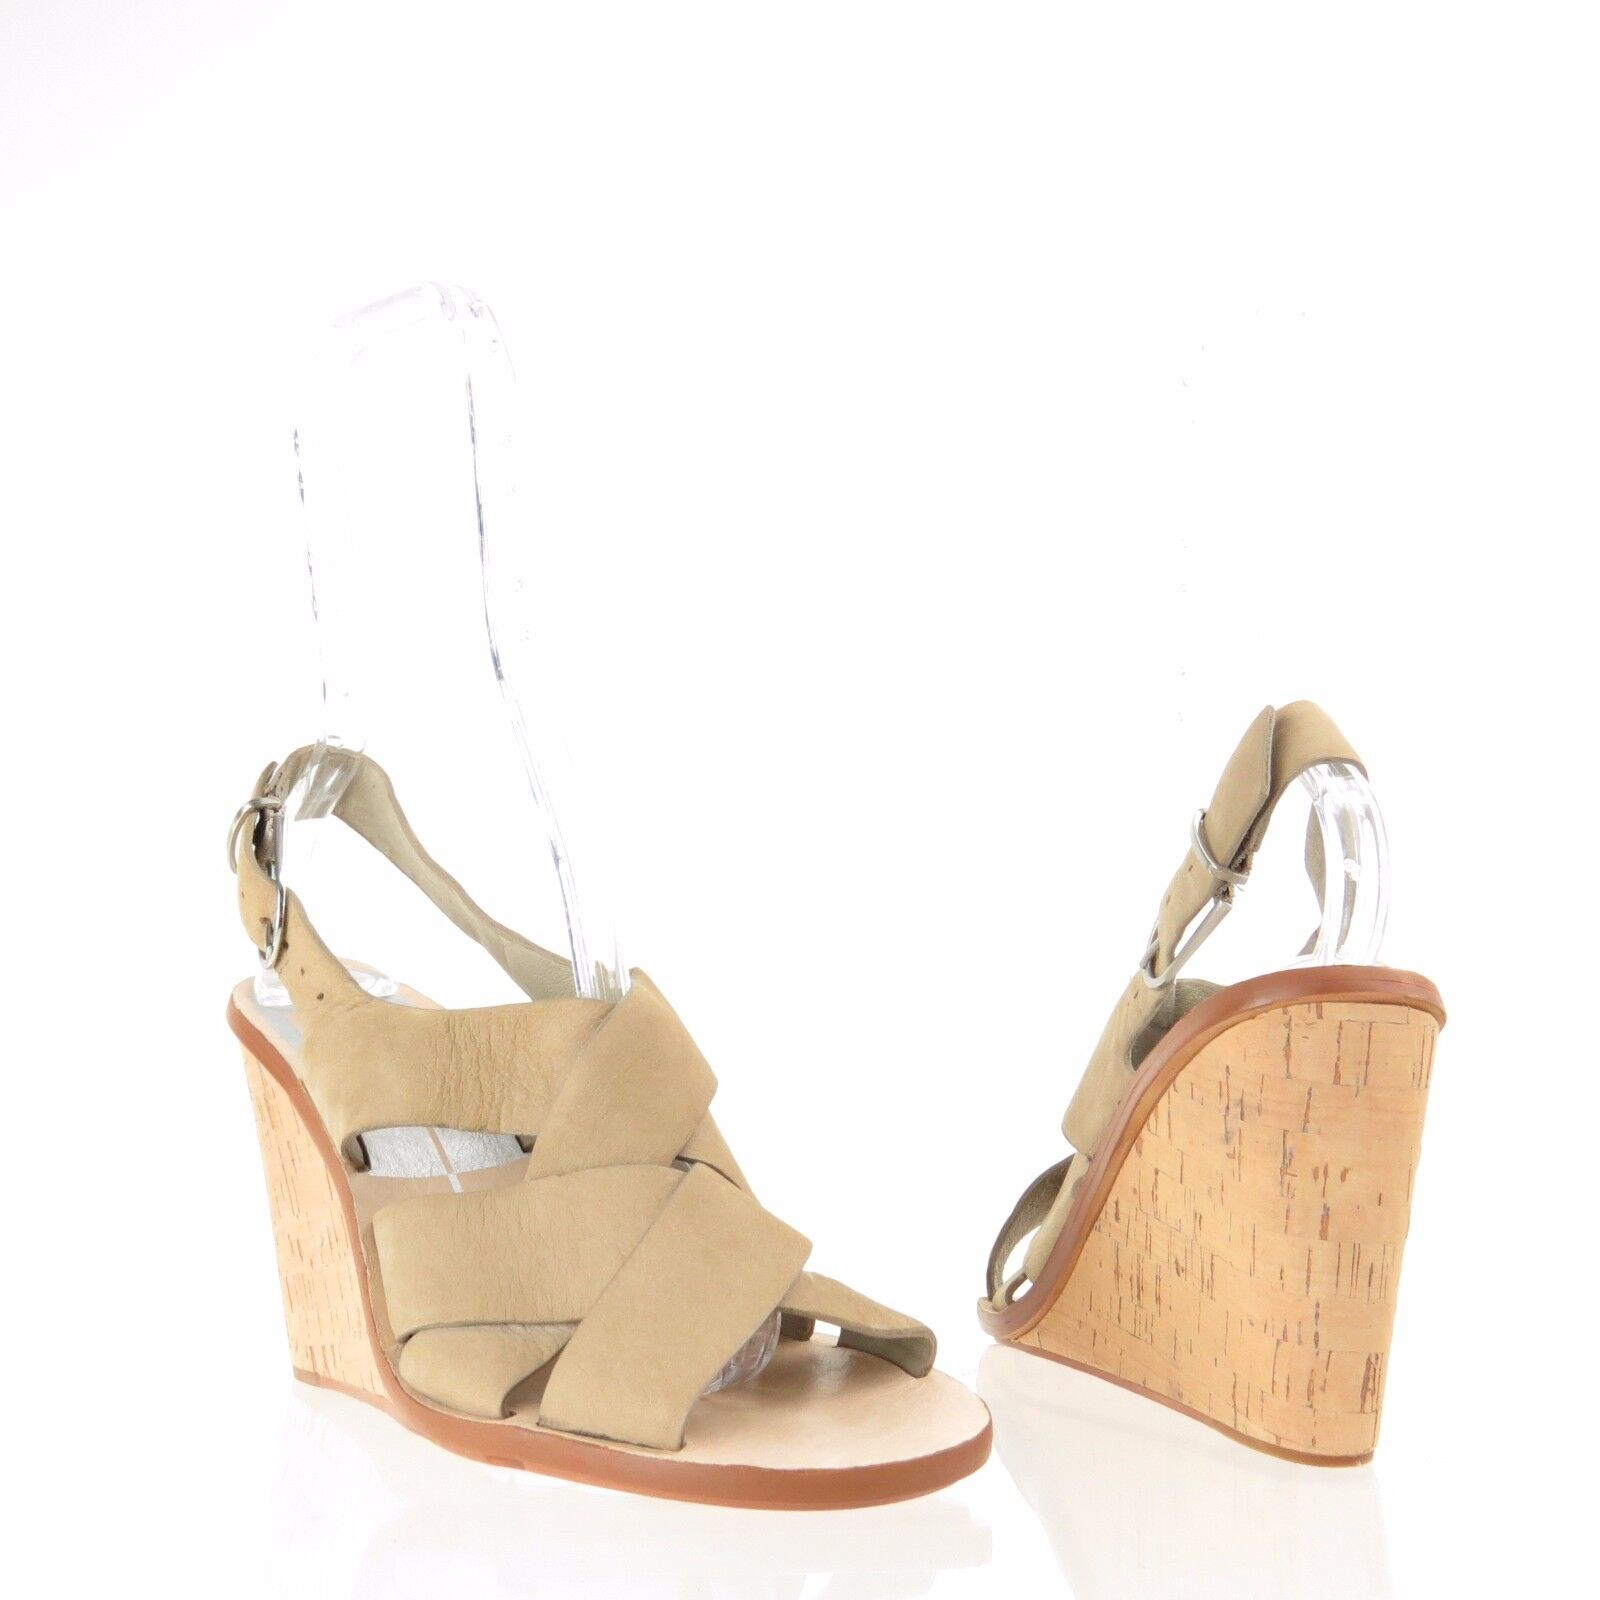 Womens Dolce Vita Remie Shoes Tan Suede Sling 7 Back Wedge Sandals Sz 7 Sling M NEW $160 9c83df